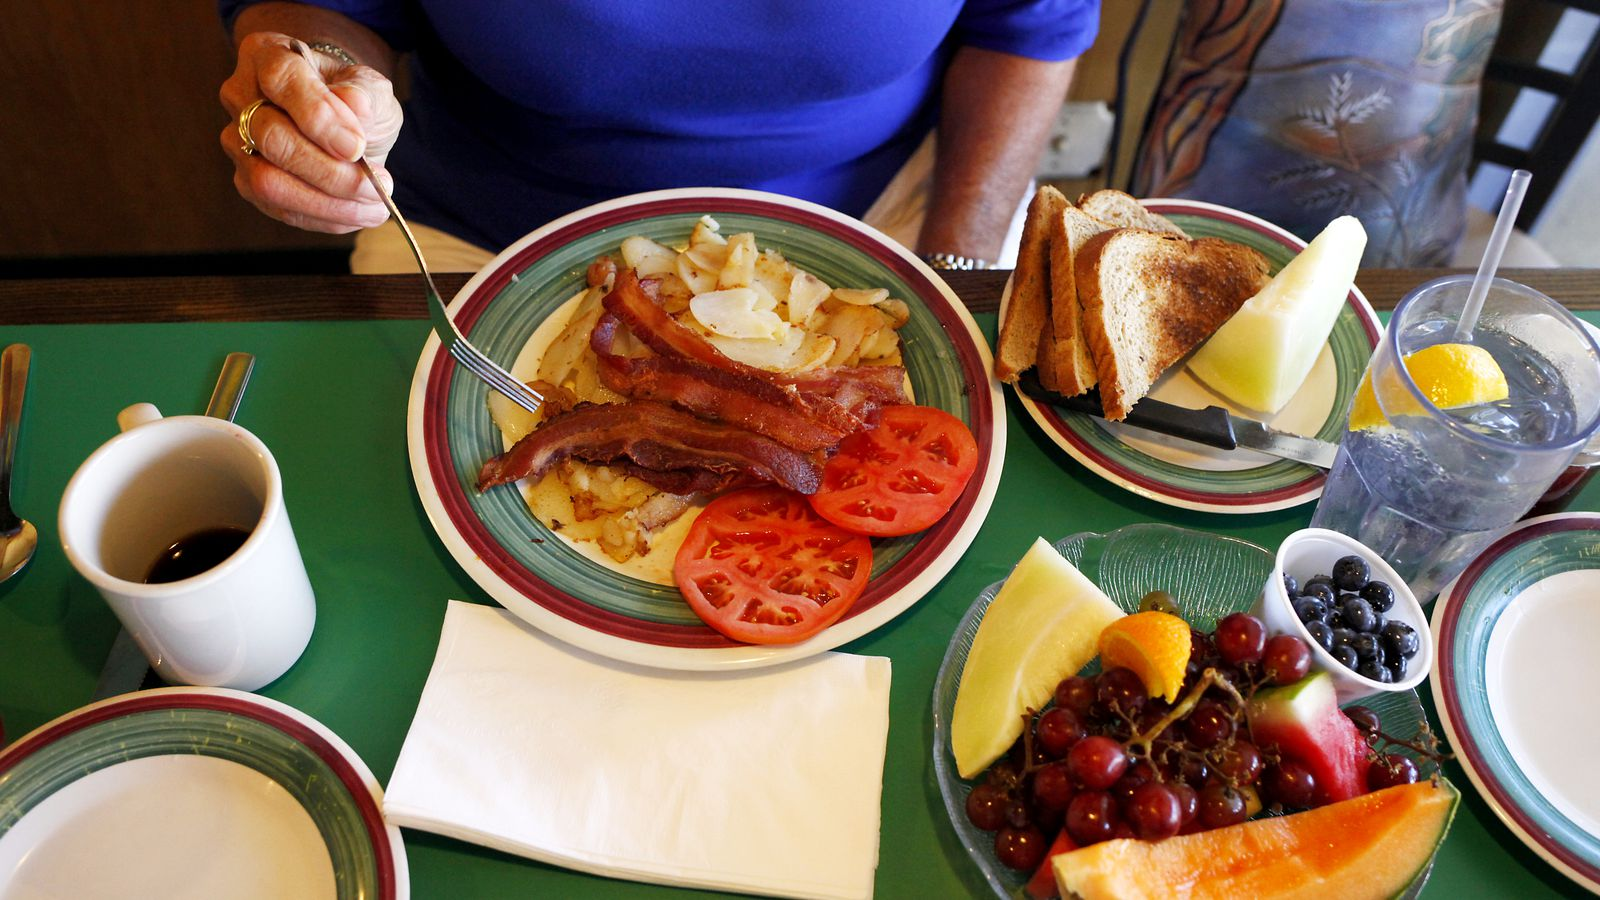 Rye toast, bacon, tomatoes, potatoes and fresh fruit at the Frog Pond restaurant.